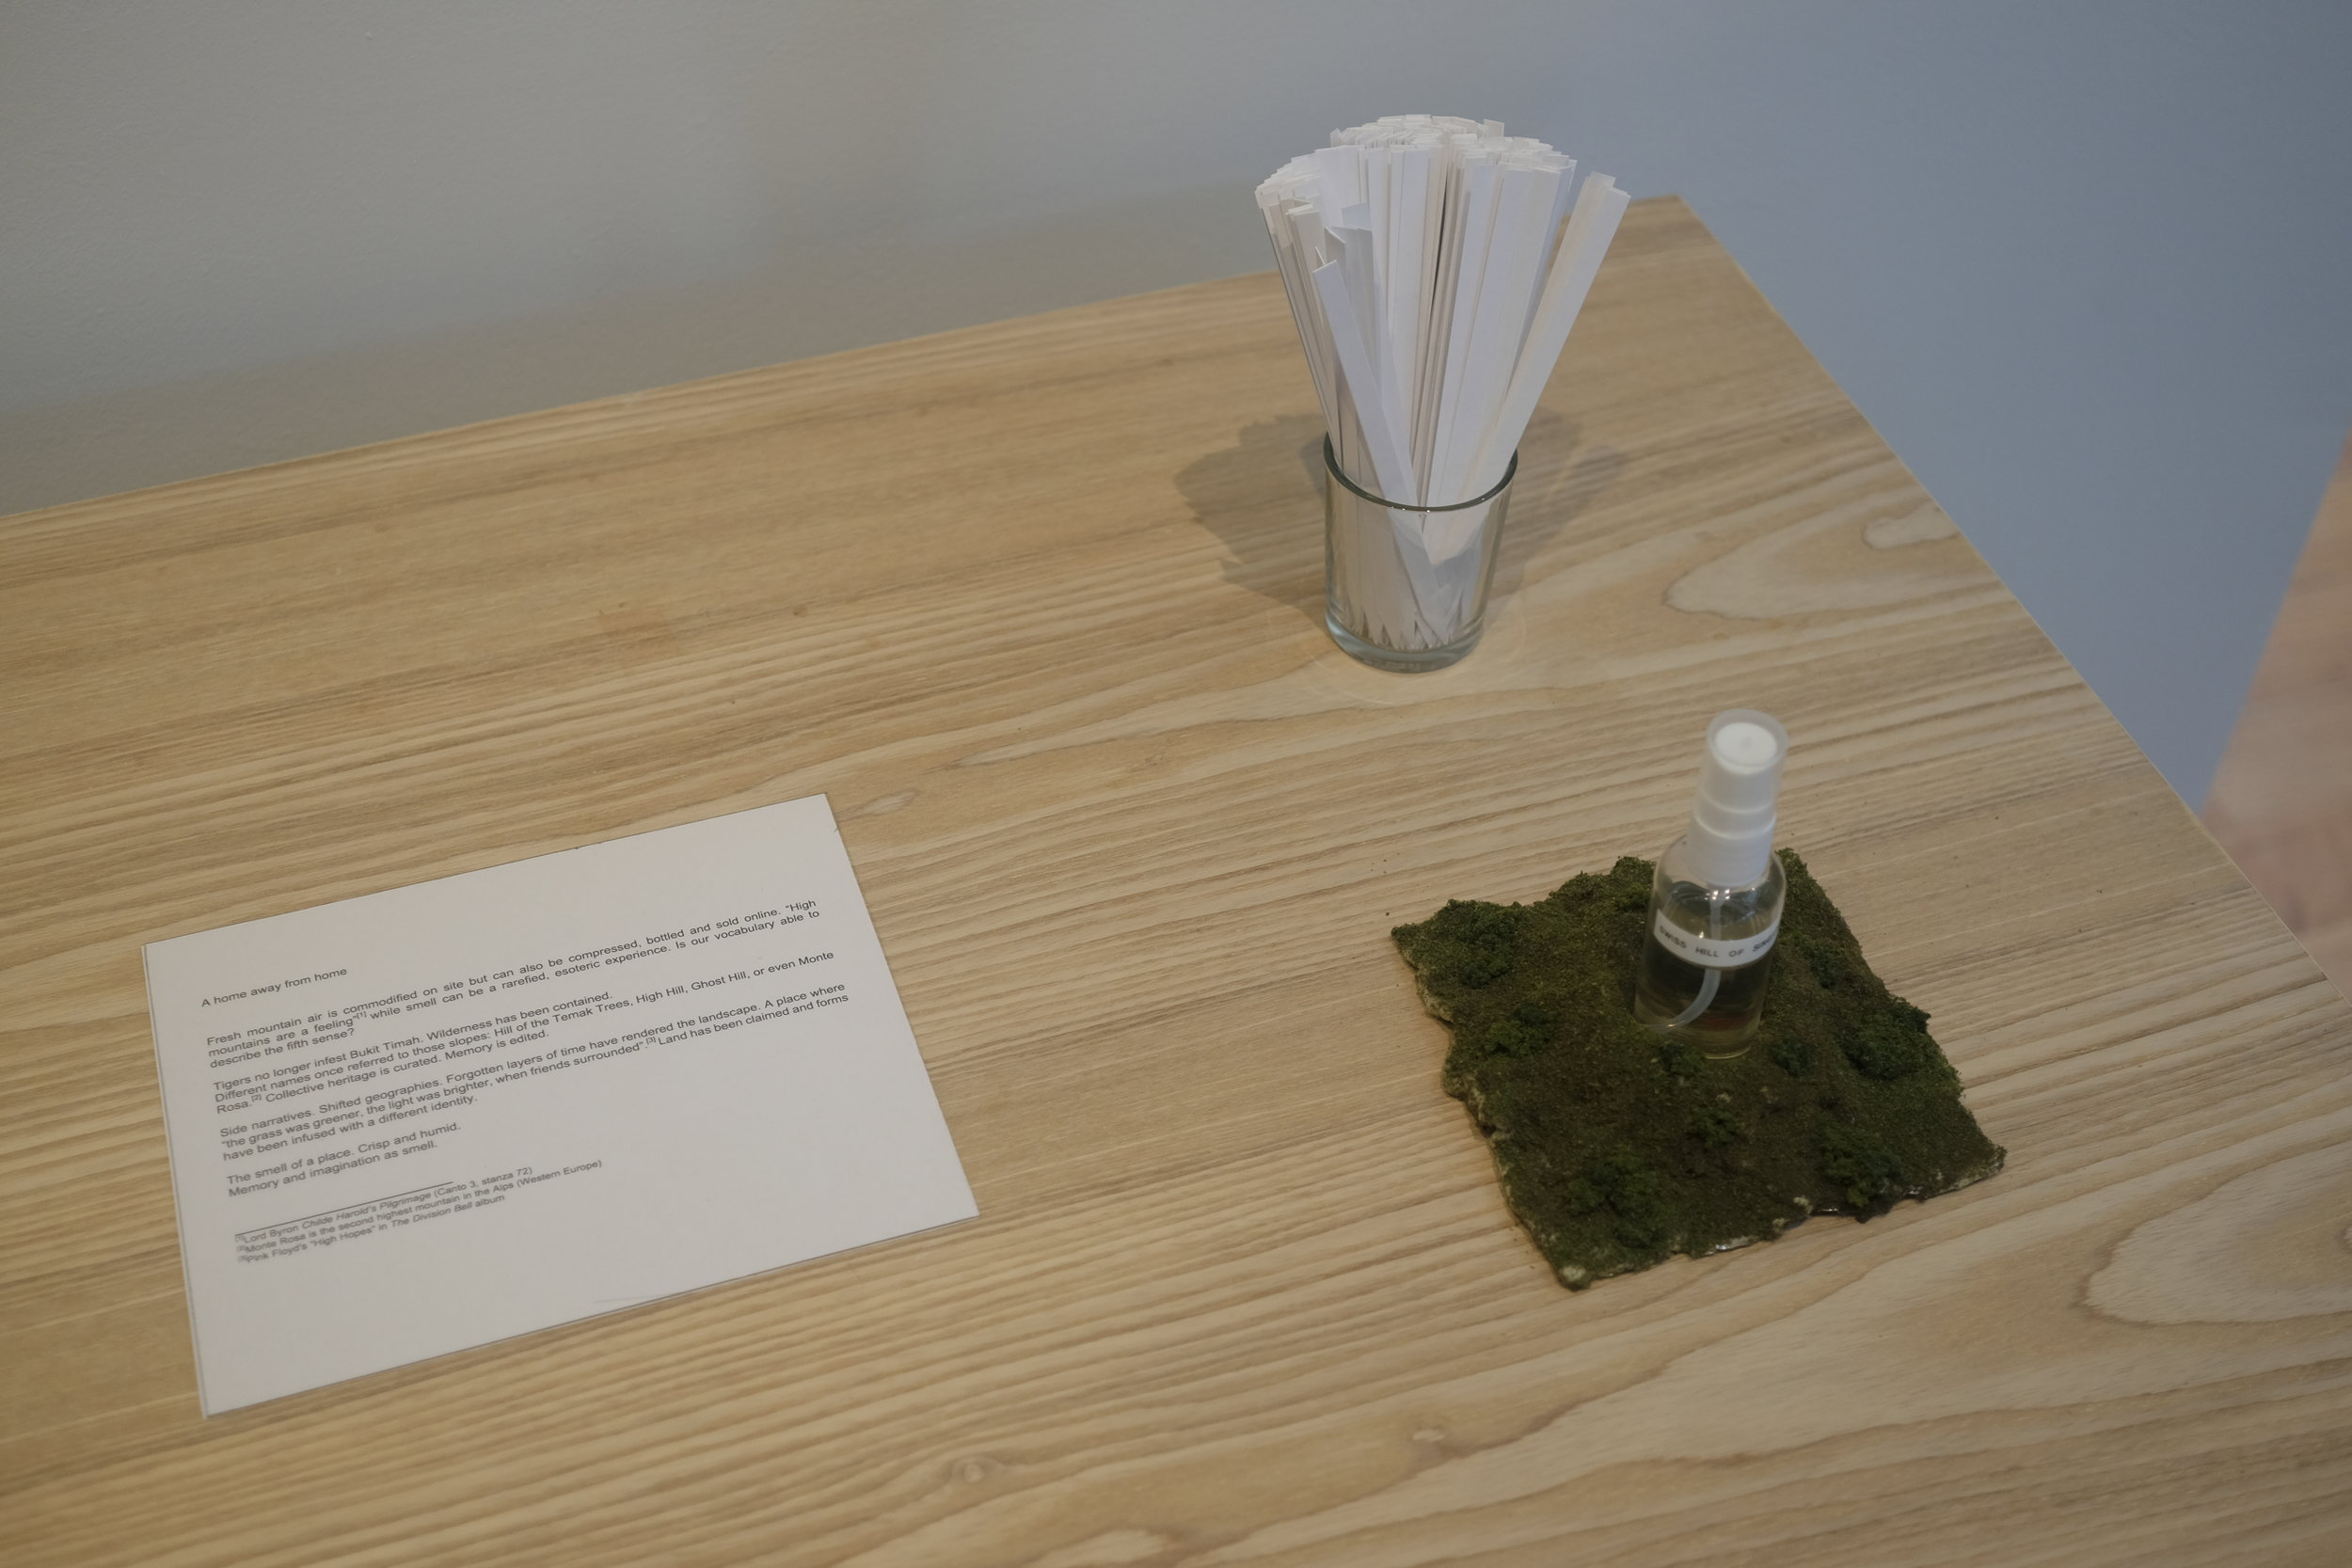 The scent and the text accompanying the display